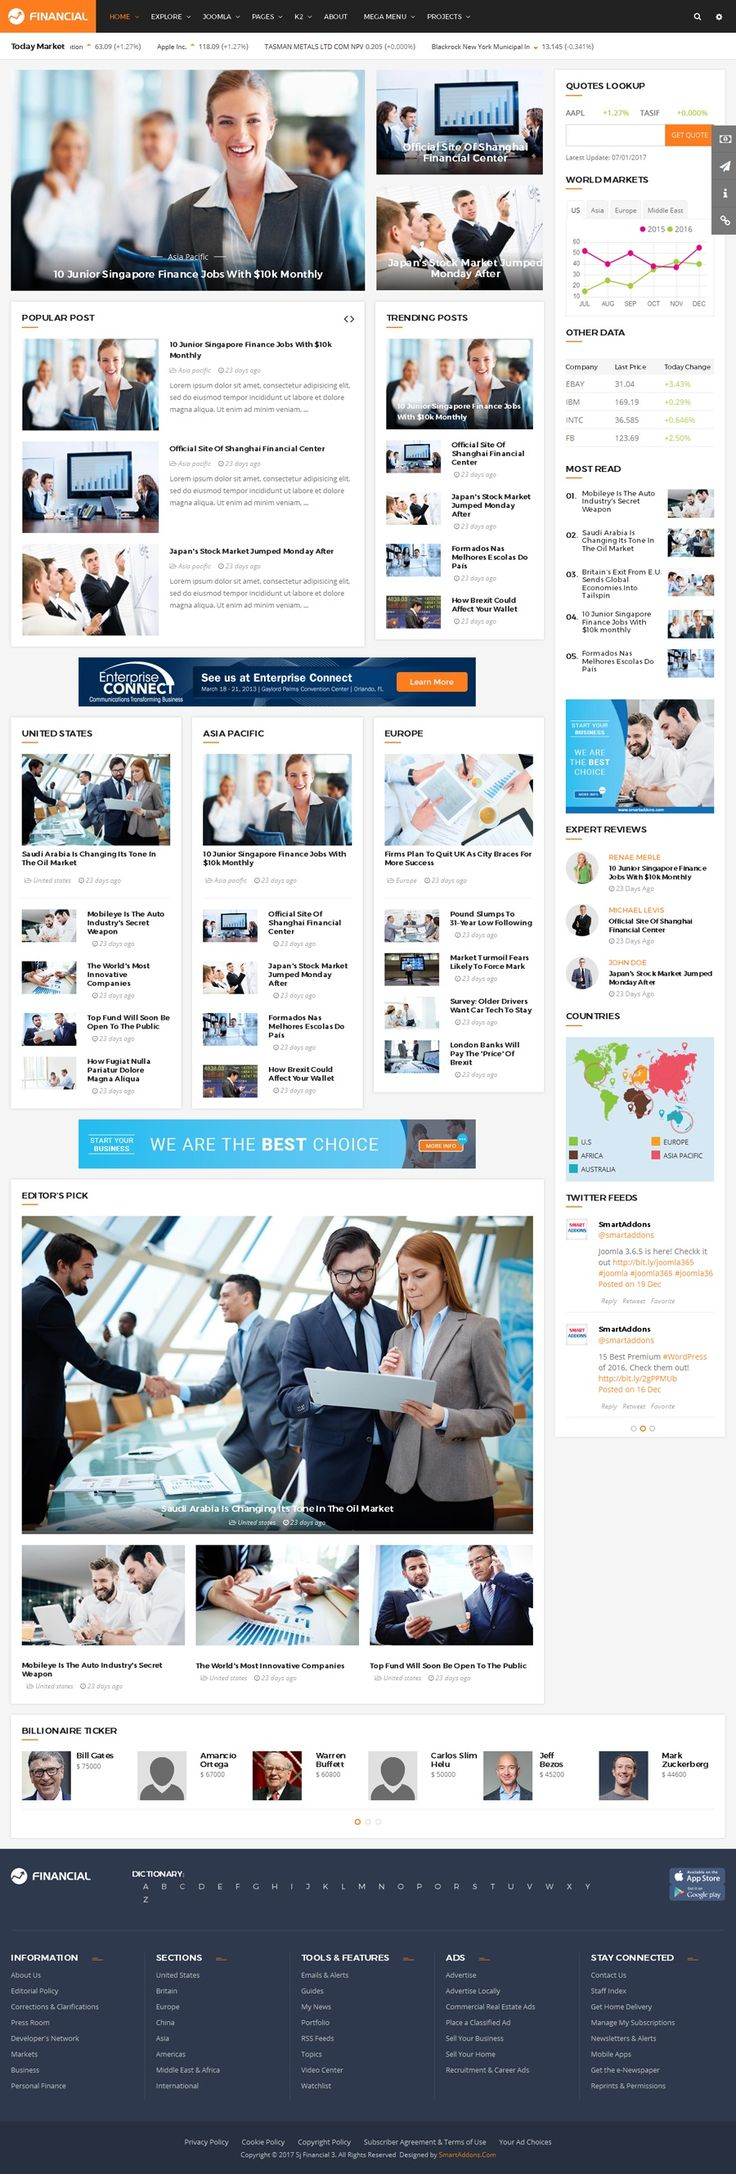 SJ Financial III is a simple, clean and powerful Joomla template that is built to fit for financial related website like Financial News, Magazine, Financial Firms, Business, Blog and much more. This news, magazine Joomla template comes supports lots of real world features that a financial related site required: World Market Statistics, Quotes Lookup, Stock Exchange...